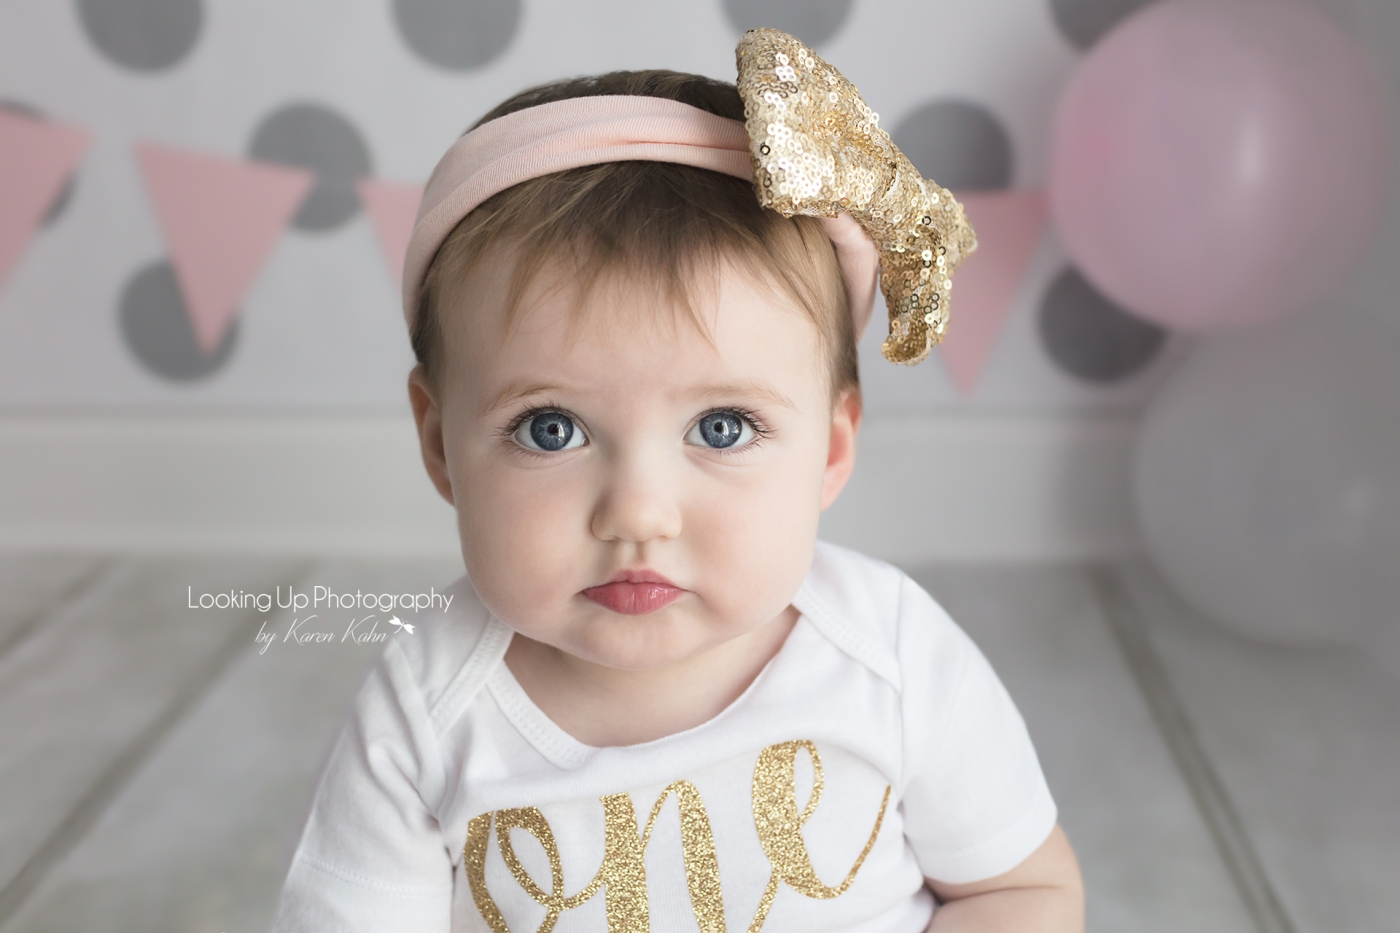 Pouty cuteness in gold and pink themes themed cake smash session for one year old milestone baby girl looking adorable in onesie with gray polka dots for 12 month portrait